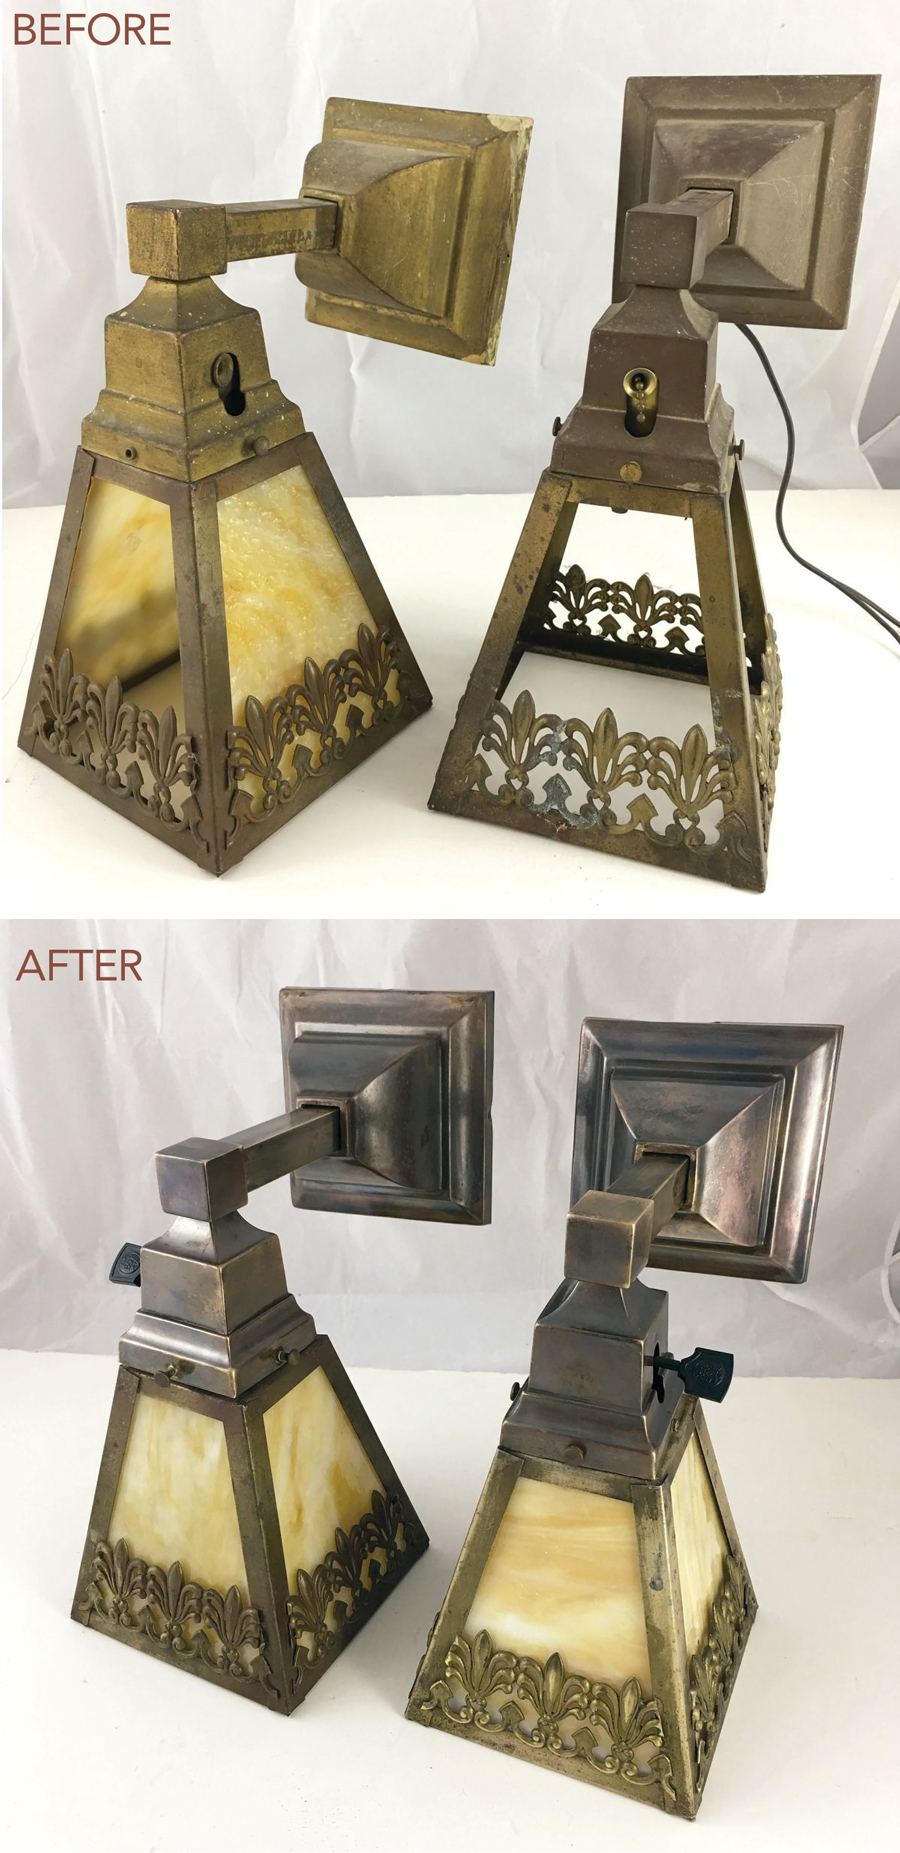 restoring antique lighting-before and after